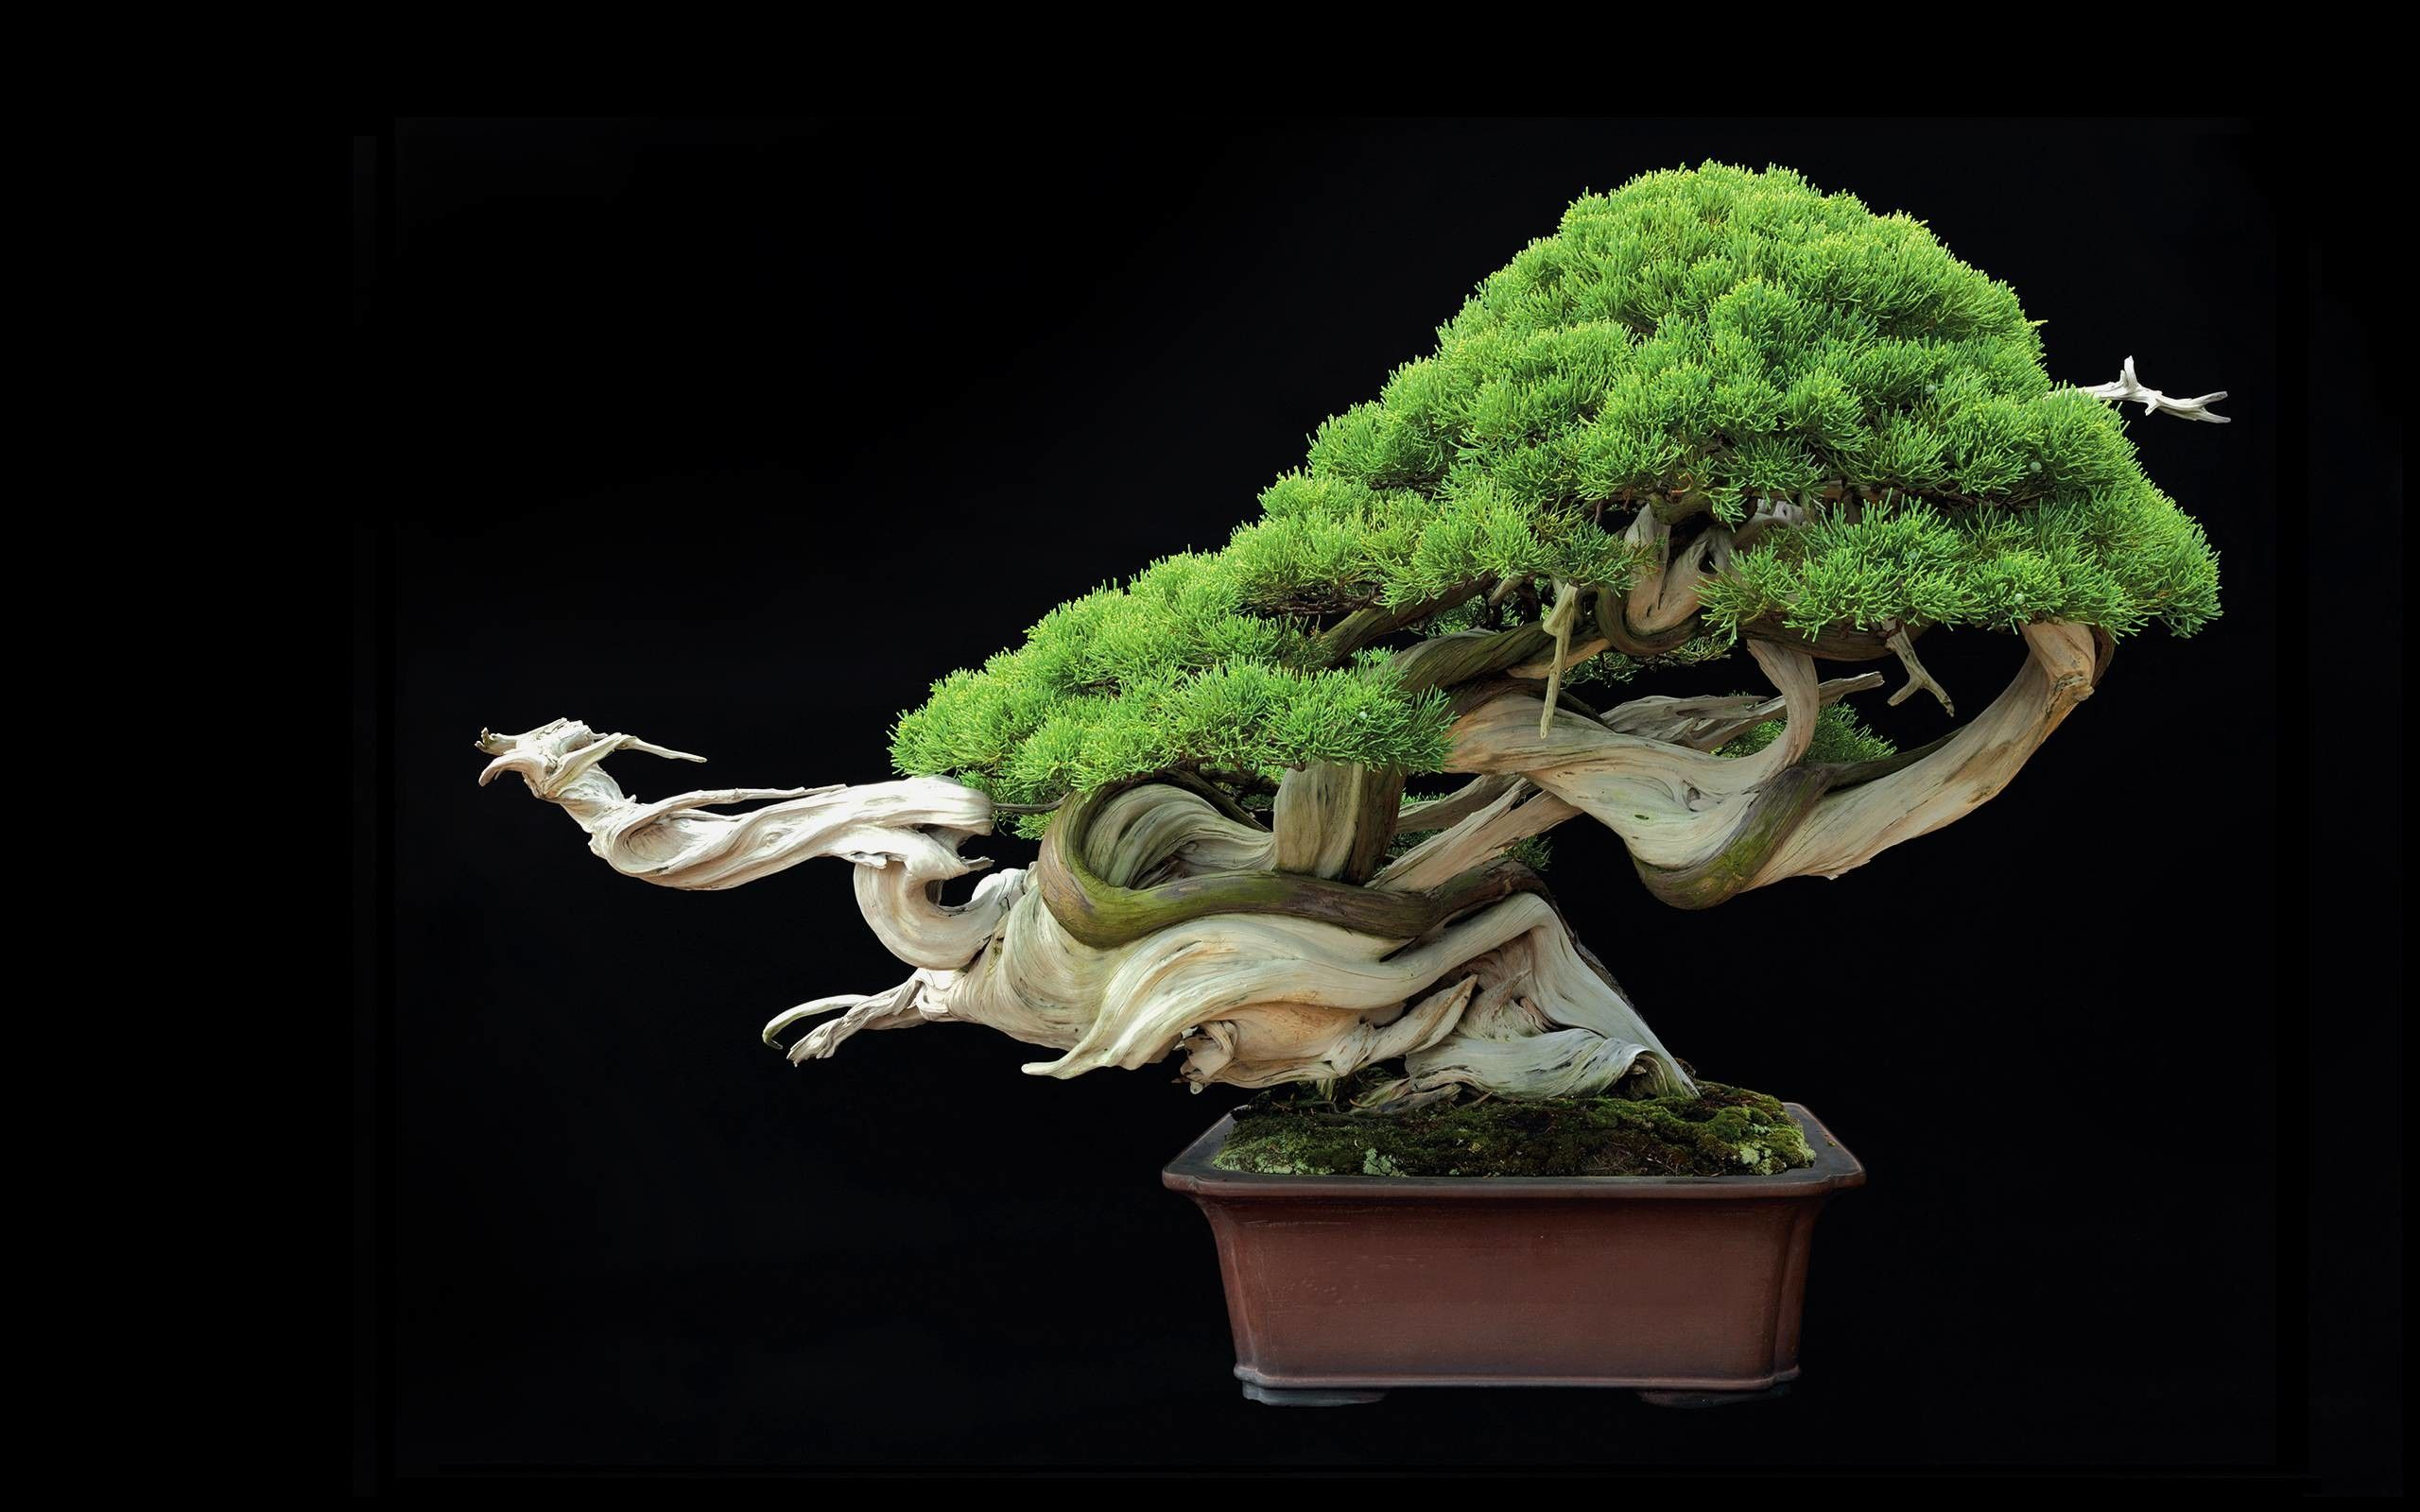 Bonsai Tree Wallpapers Top Free Bonsai Tree Backgrounds Wallpaperaccess